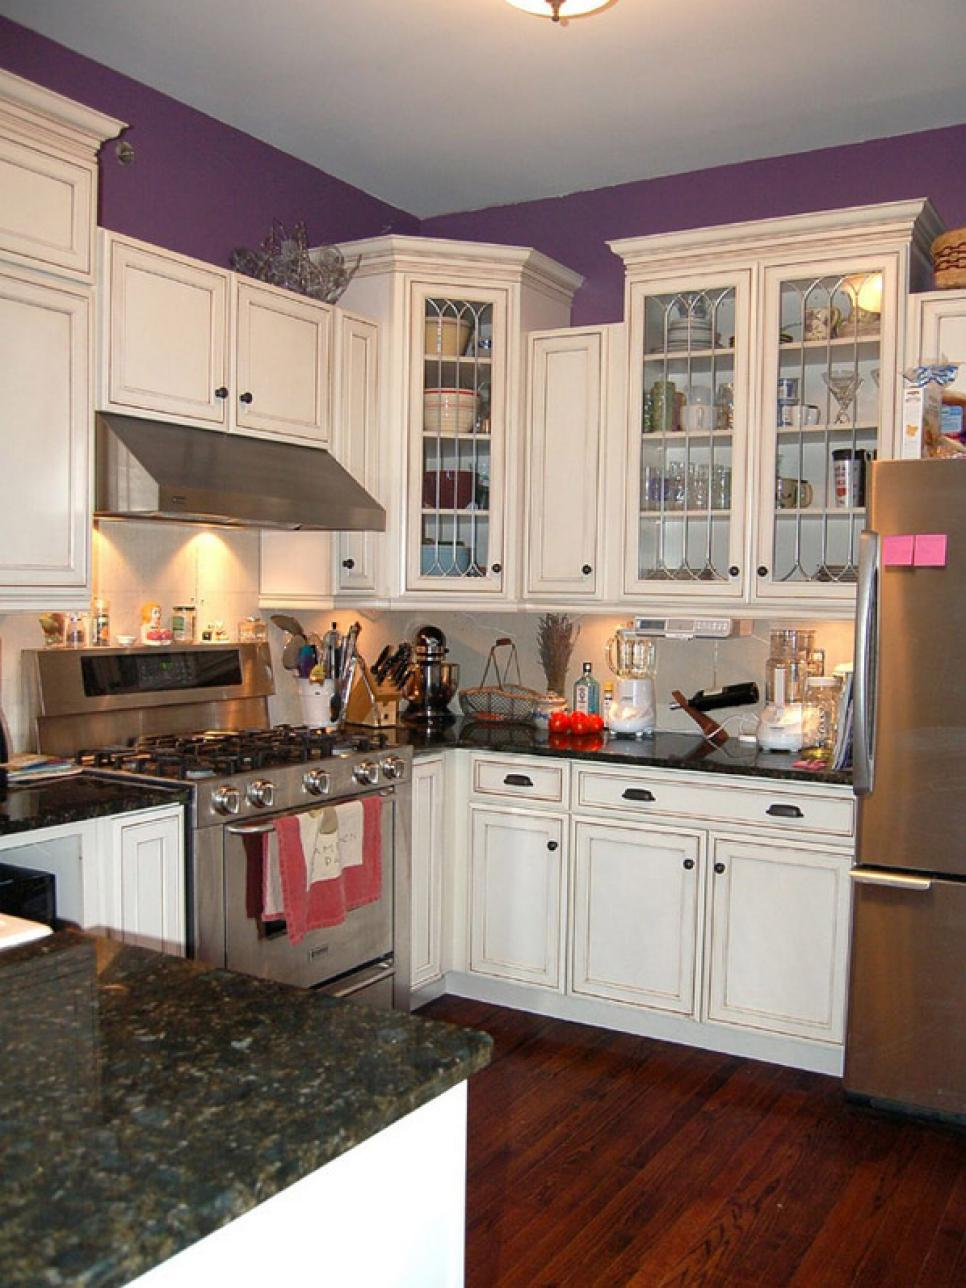 Small kitchen design ideas and solutions hgtv for Small kitchen cabinets